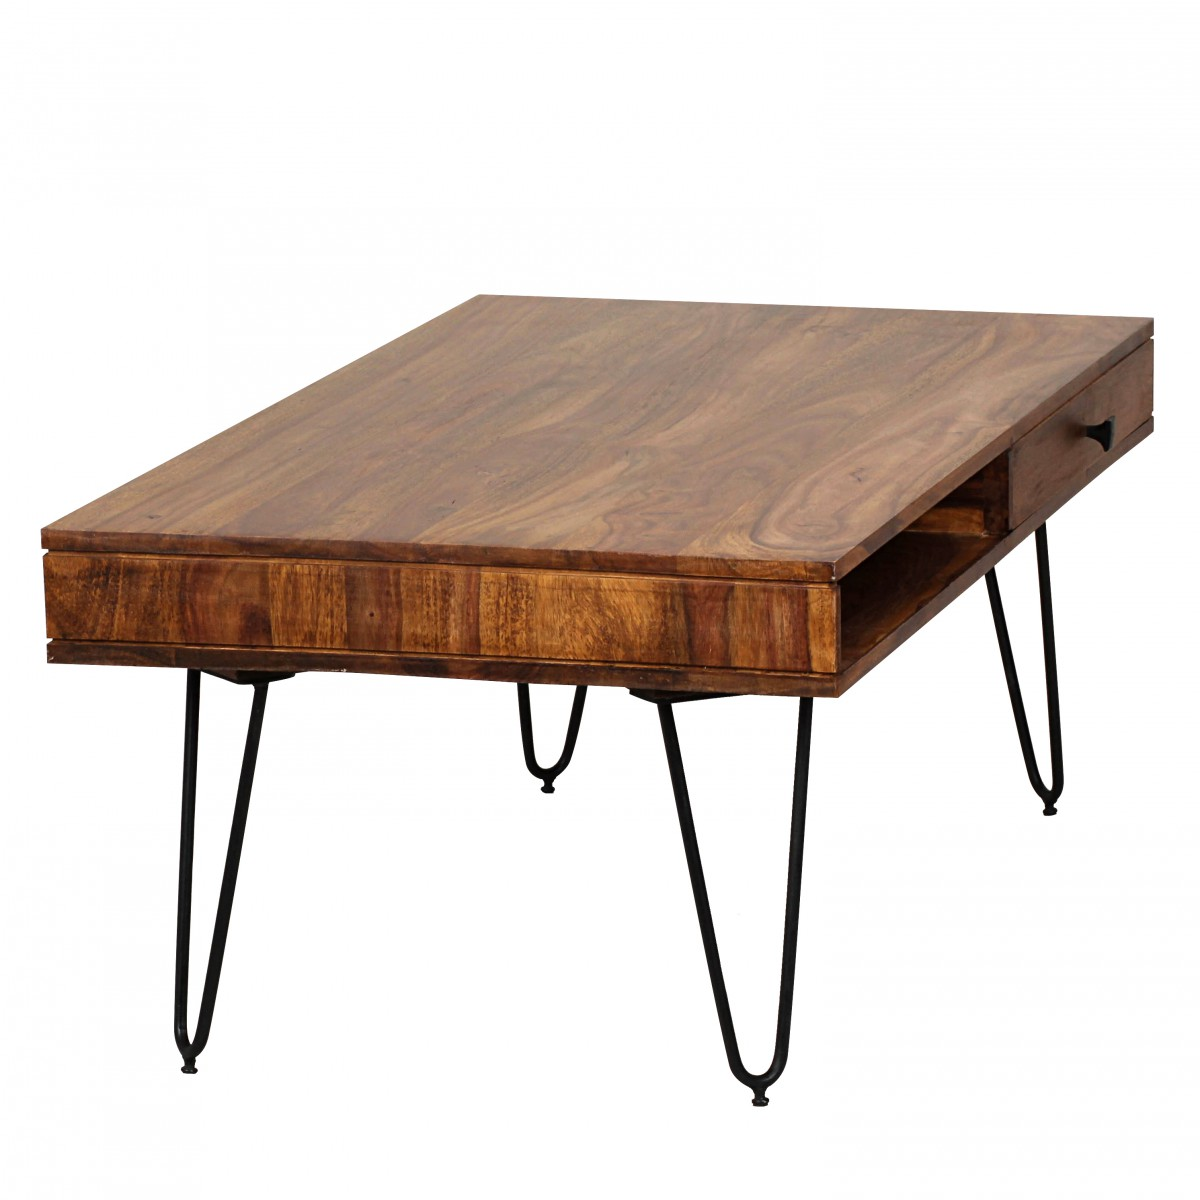 Wohnling solid wood sheesham coffee table 120 x 60 x 40 cm for 60s coffee table